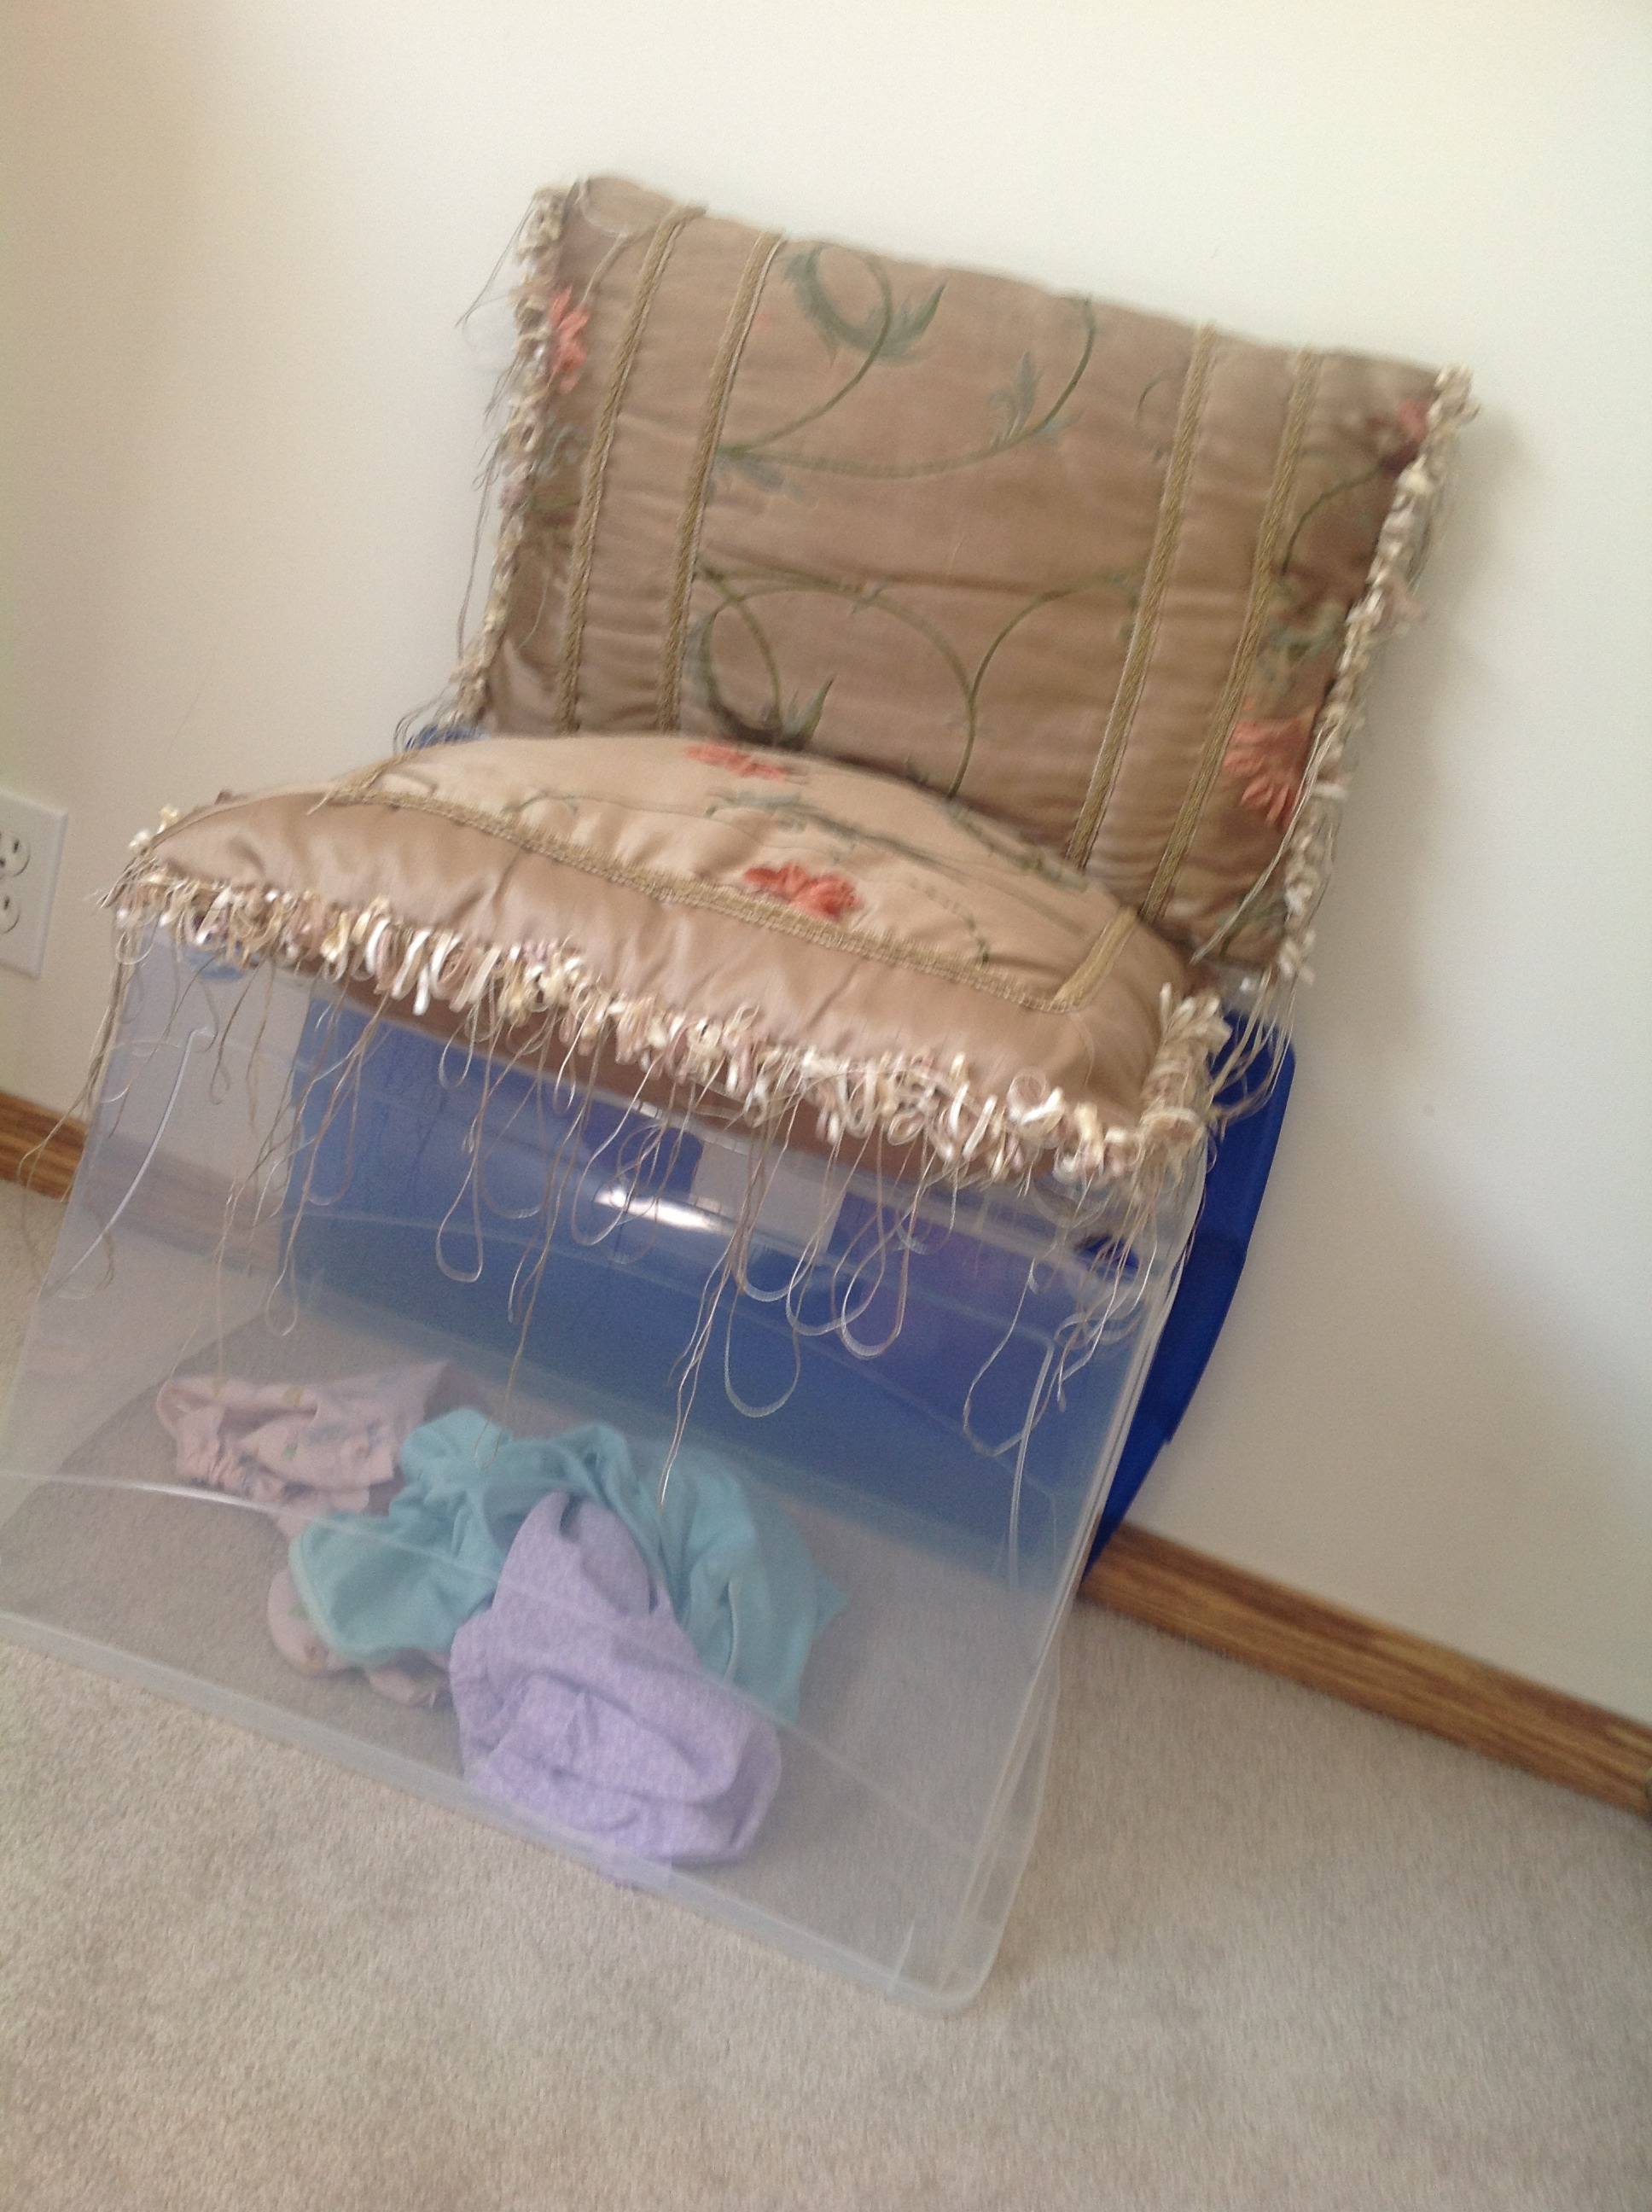 Dirty Laundry Bucket/chair Decor For Your Room!